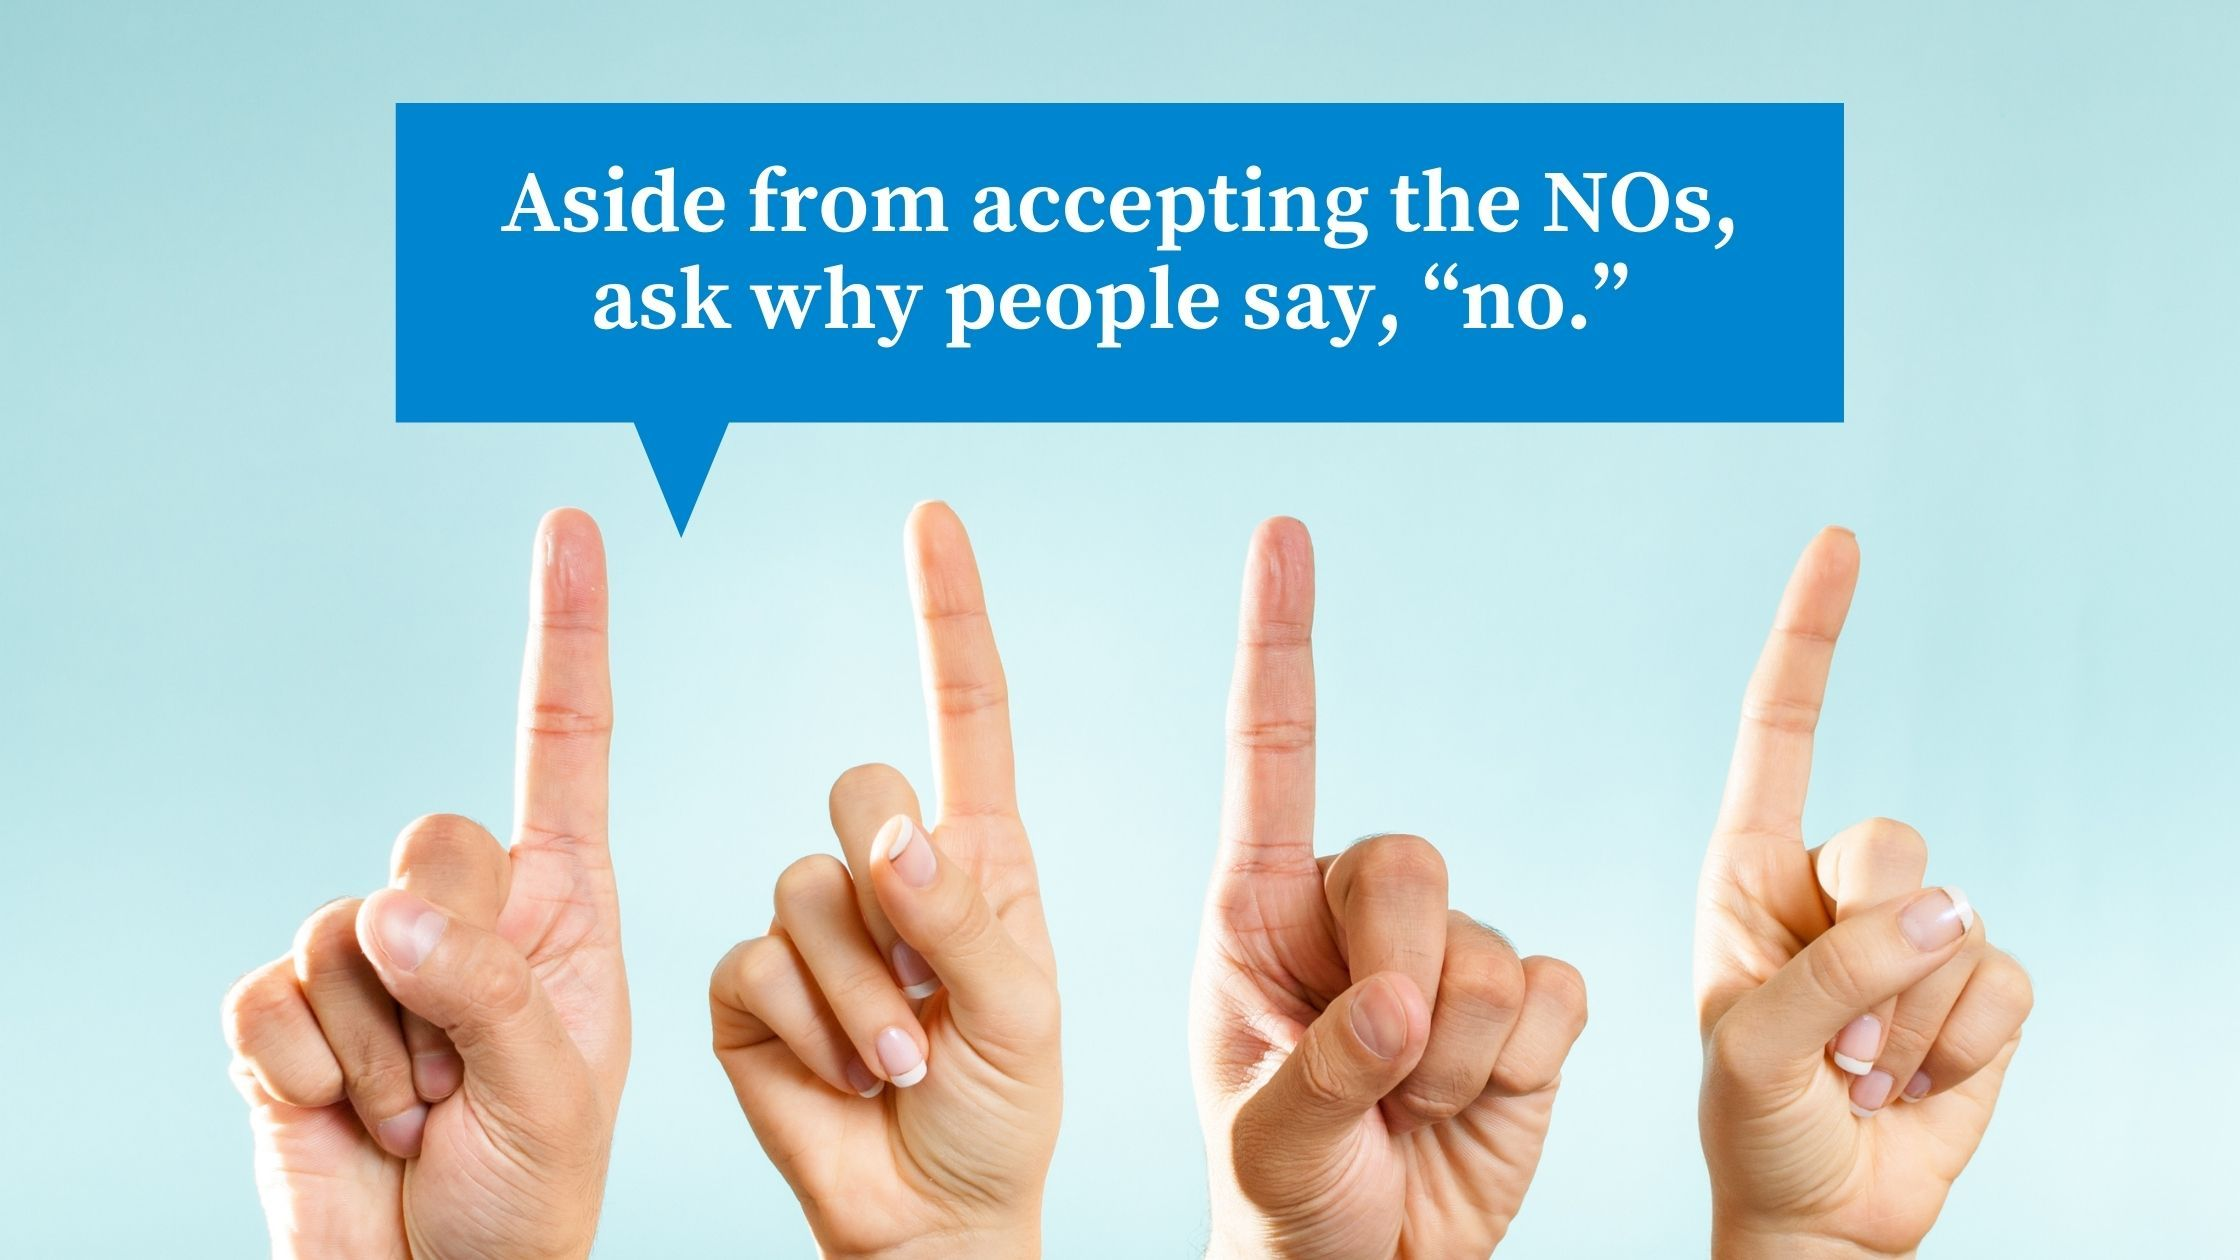 Aside from accepting the NOs, ask why people say, no.